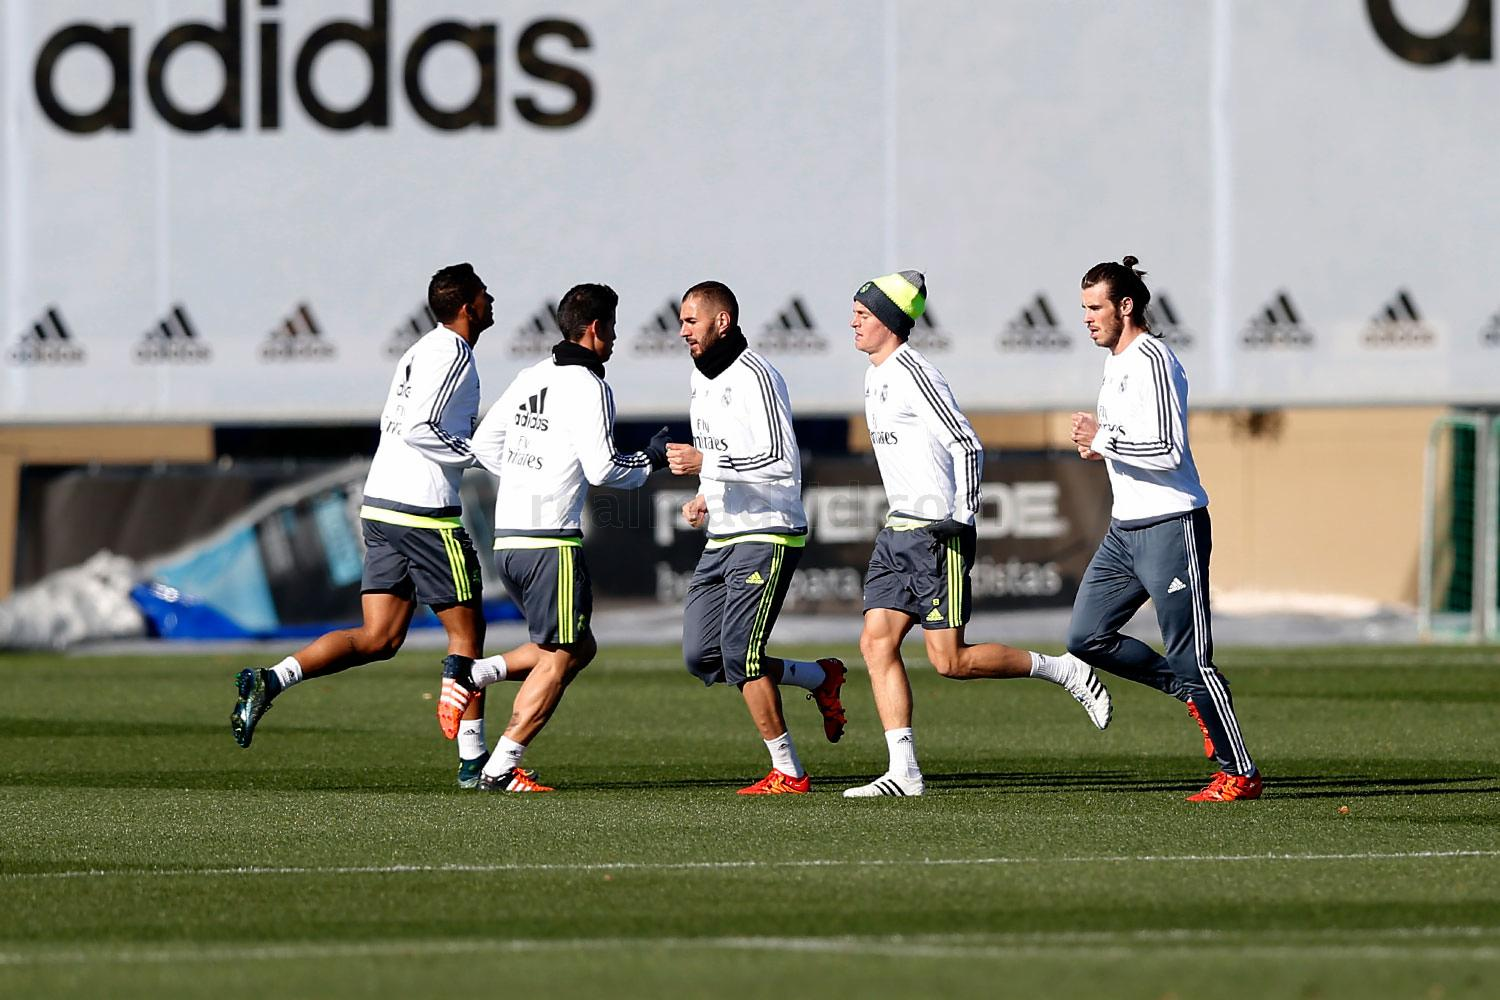 Real Madrid - Entrenamiento del Real Madrid - 23-11-2015